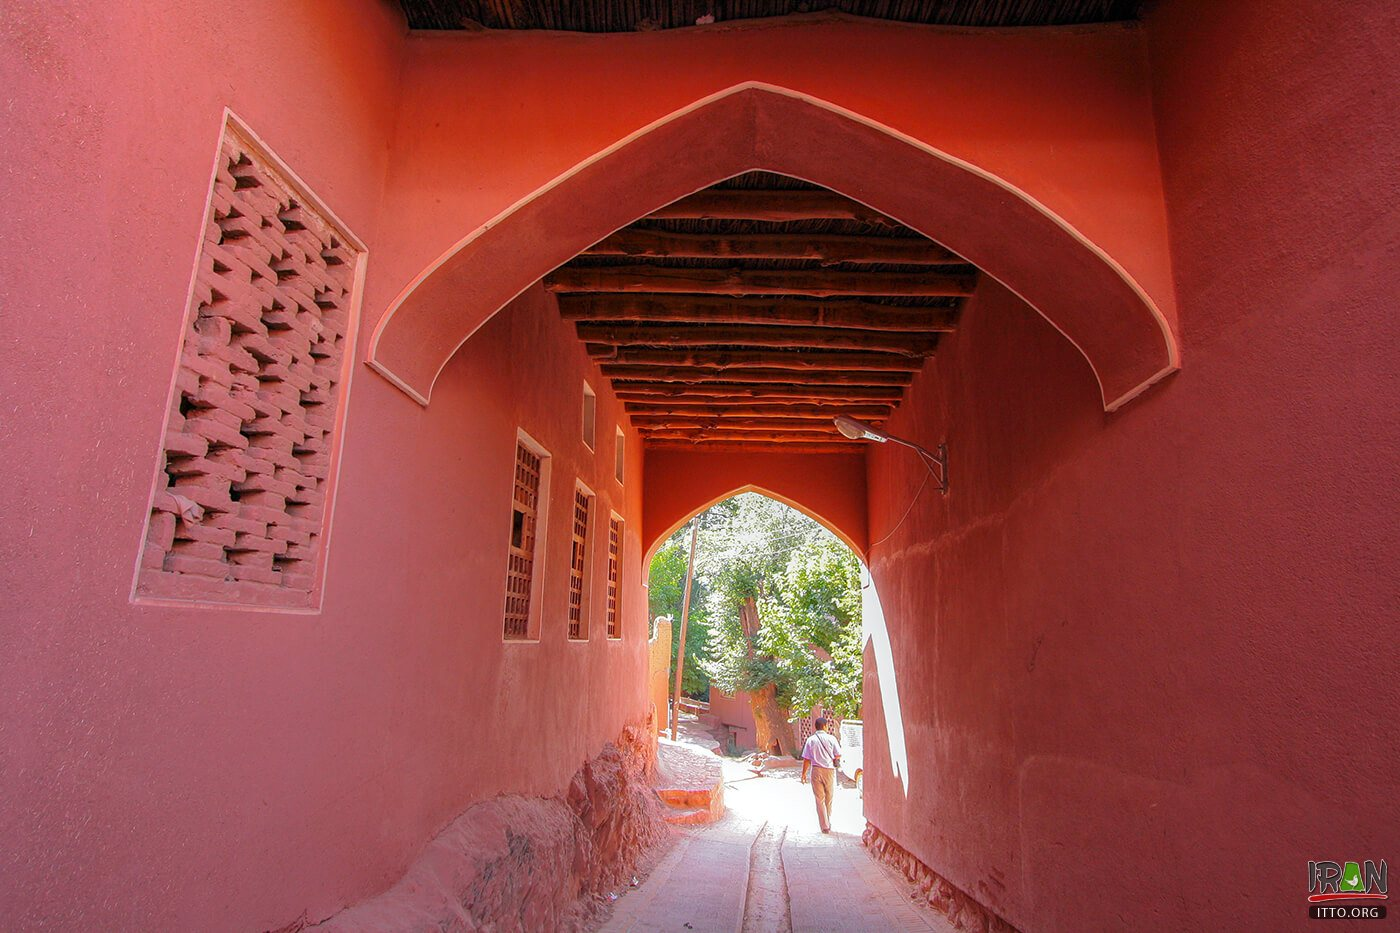 Abyaneh: The Astonishing Red Village in Iran